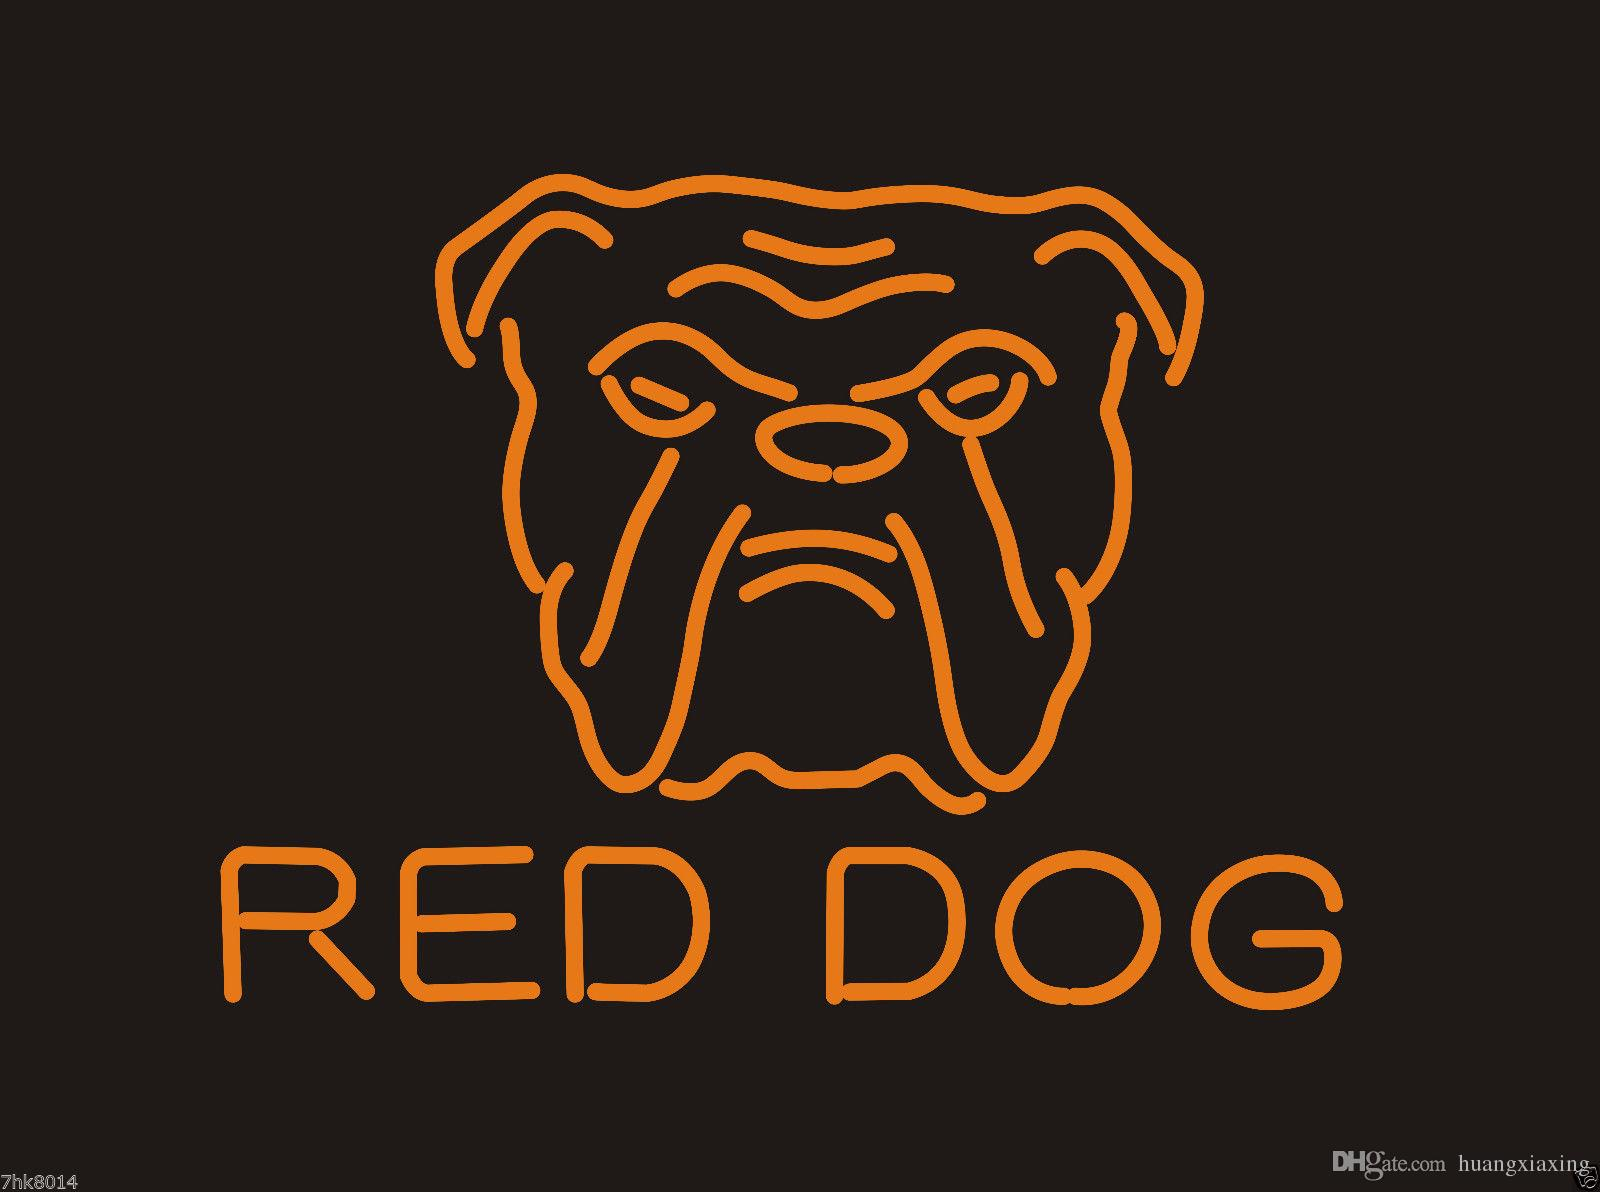 2018 new ed dog glass neon beer signs pub bars neon light red blue 2018 new ed dog glass neon beer signs pub bars neon light red blue 17 19 32 from huangxiaxing 7976 dhgate aloadofball Image collections